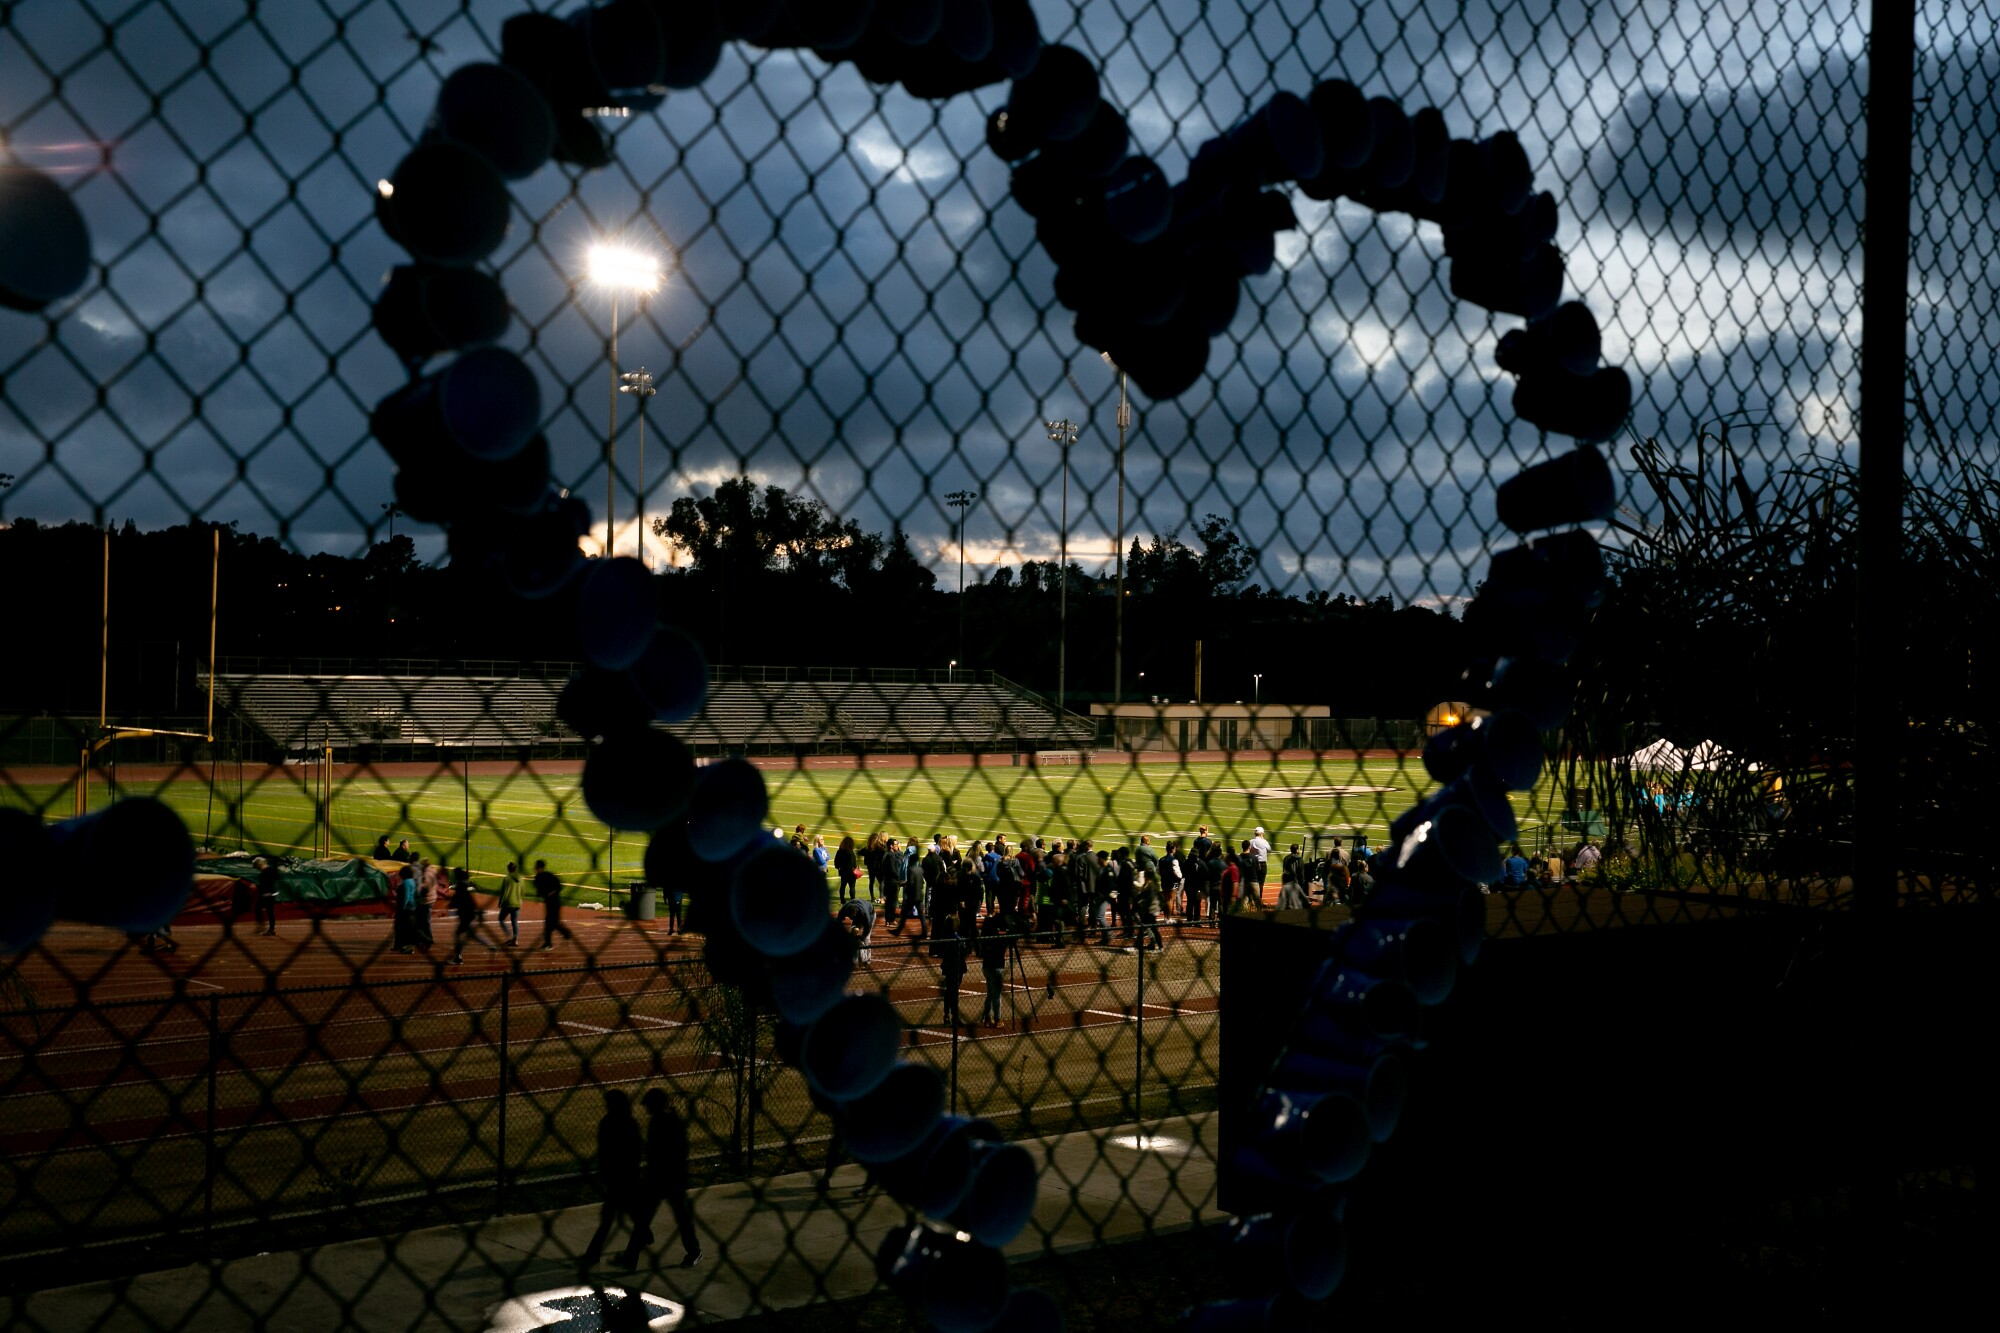 Community members gather at Poway High School on April 29, 2019, for a vigil following the shooting at Chabad of Poway.